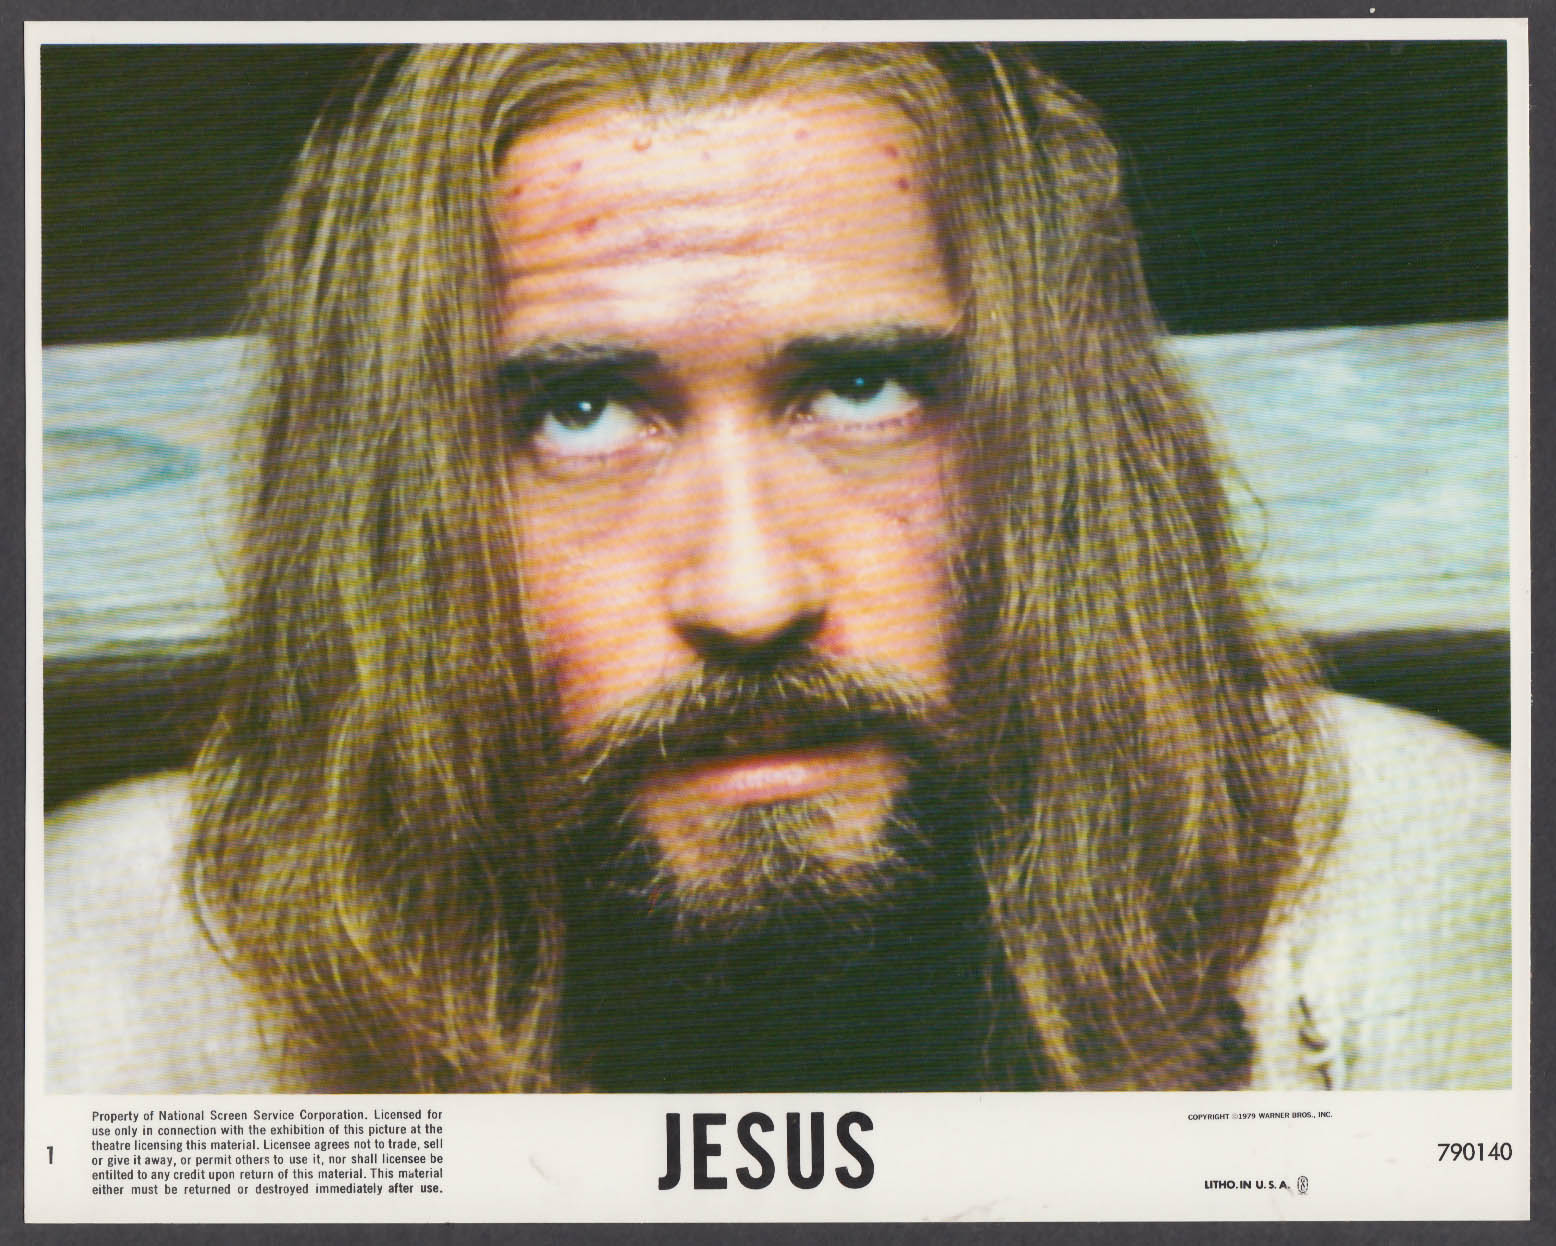 Image for Brian Deacon as Jesus 8x10 lobby card 1979 #7